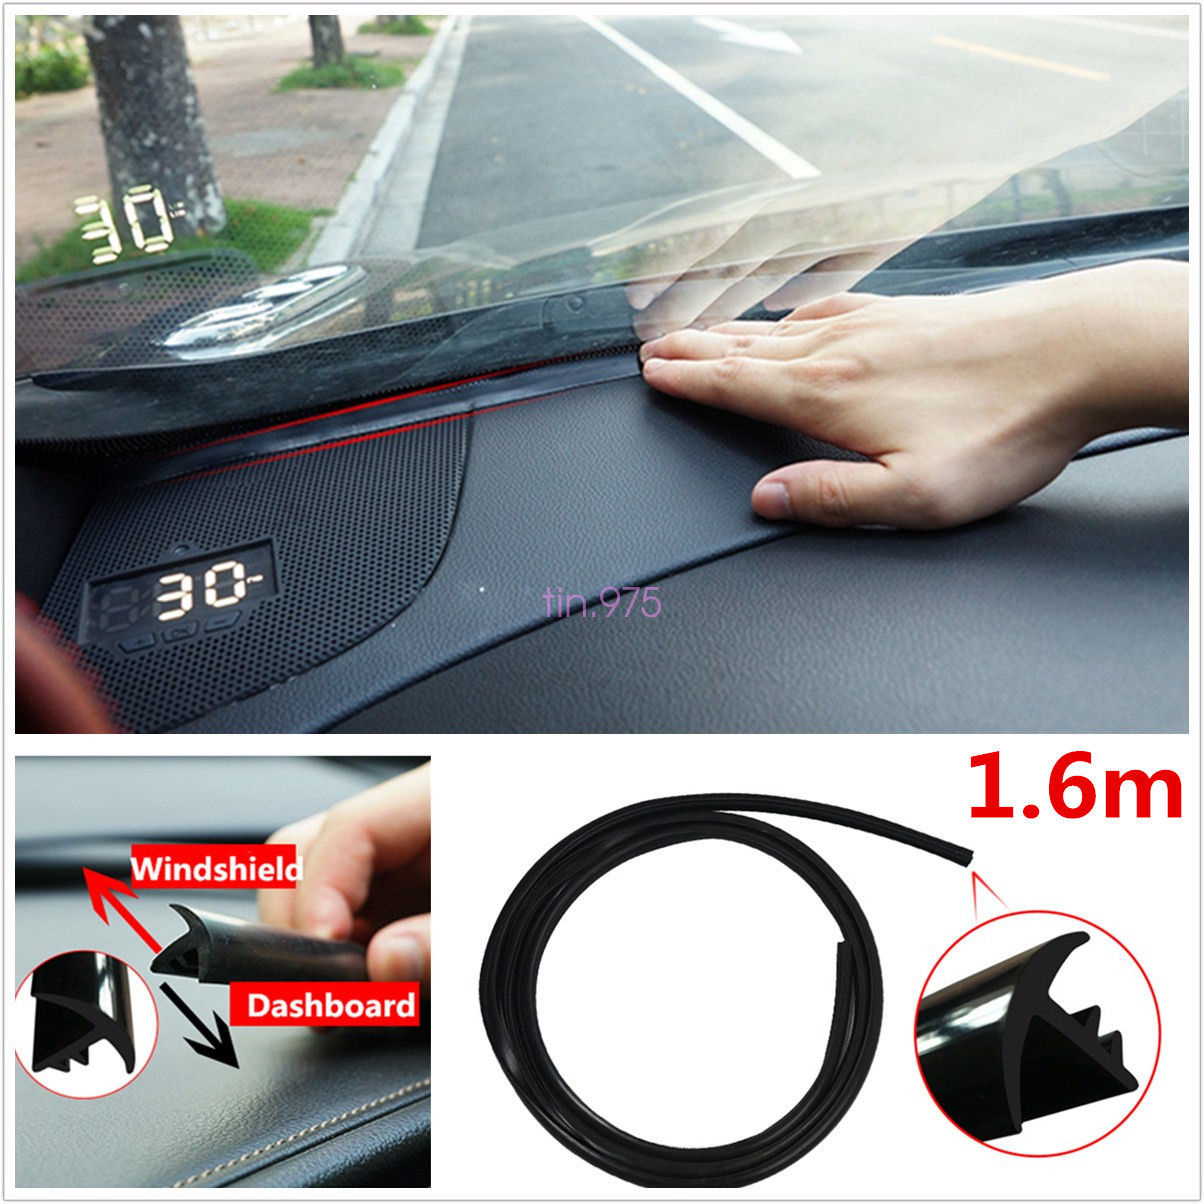 1 6m Car Windshield Dashboard Sealing Strip Noise